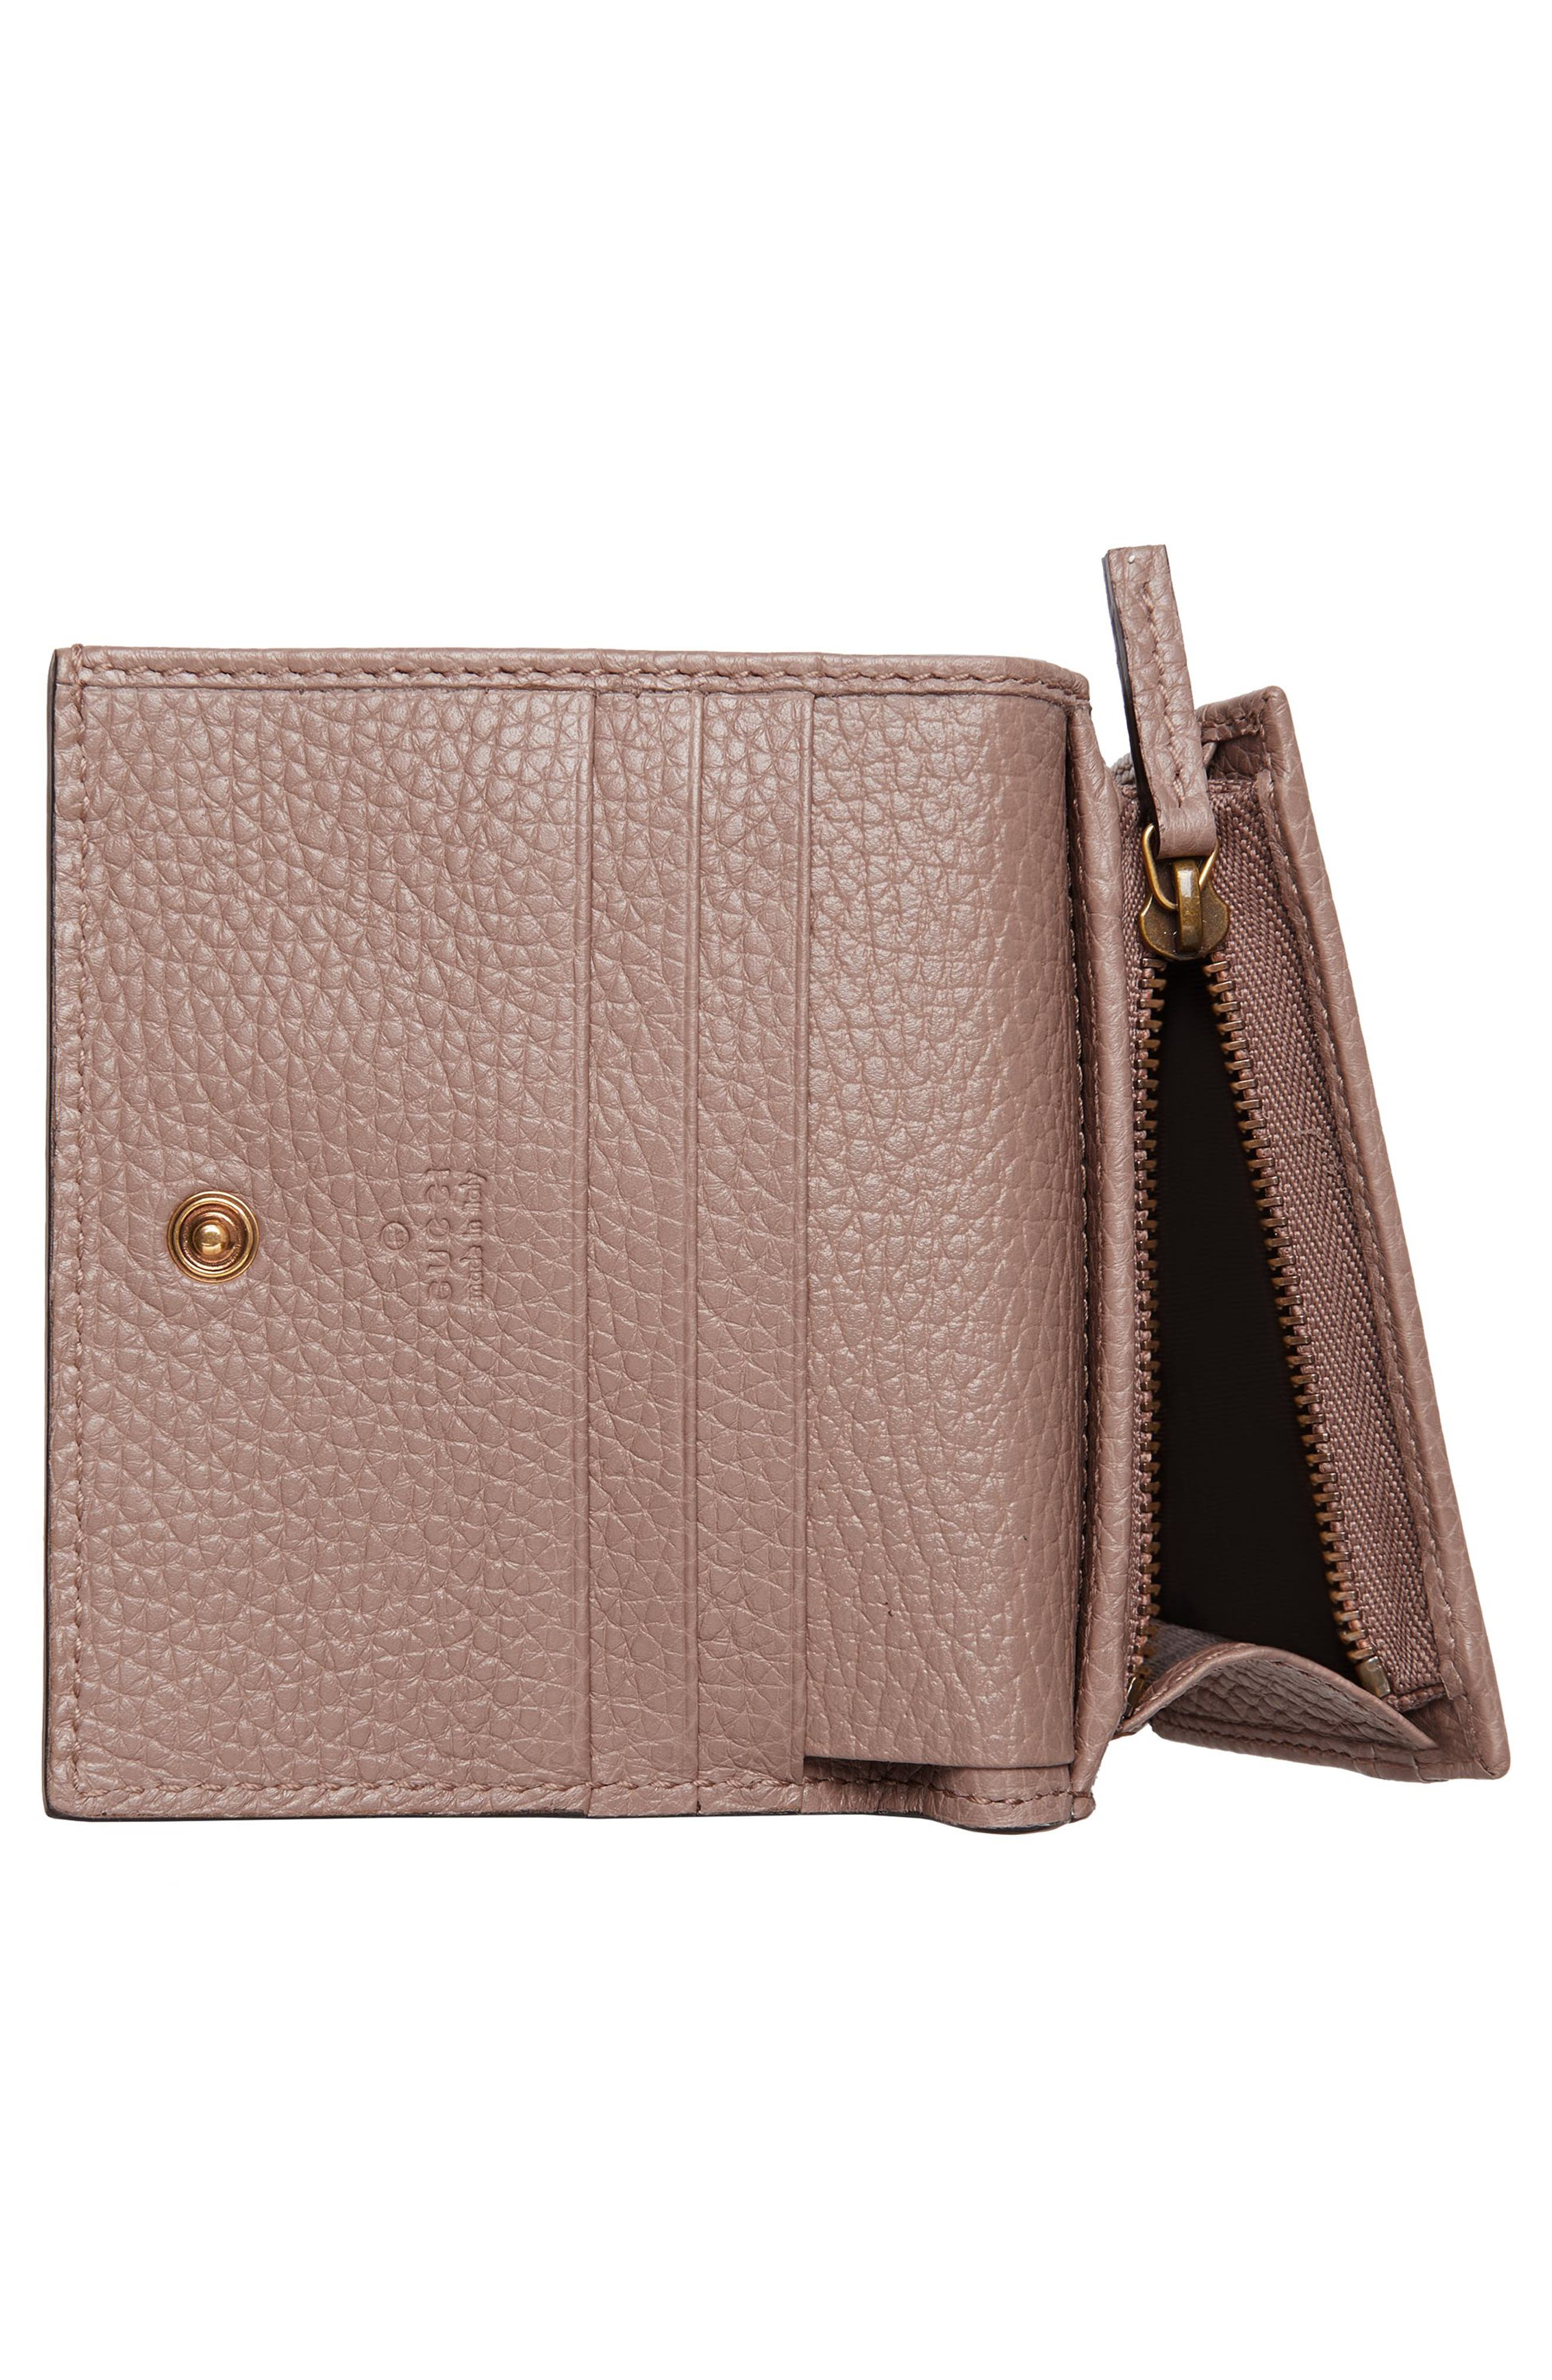 Animalier Bee Leather Card Case,                             Alternate thumbnail 4, color,                             PORCELAIN ROSE